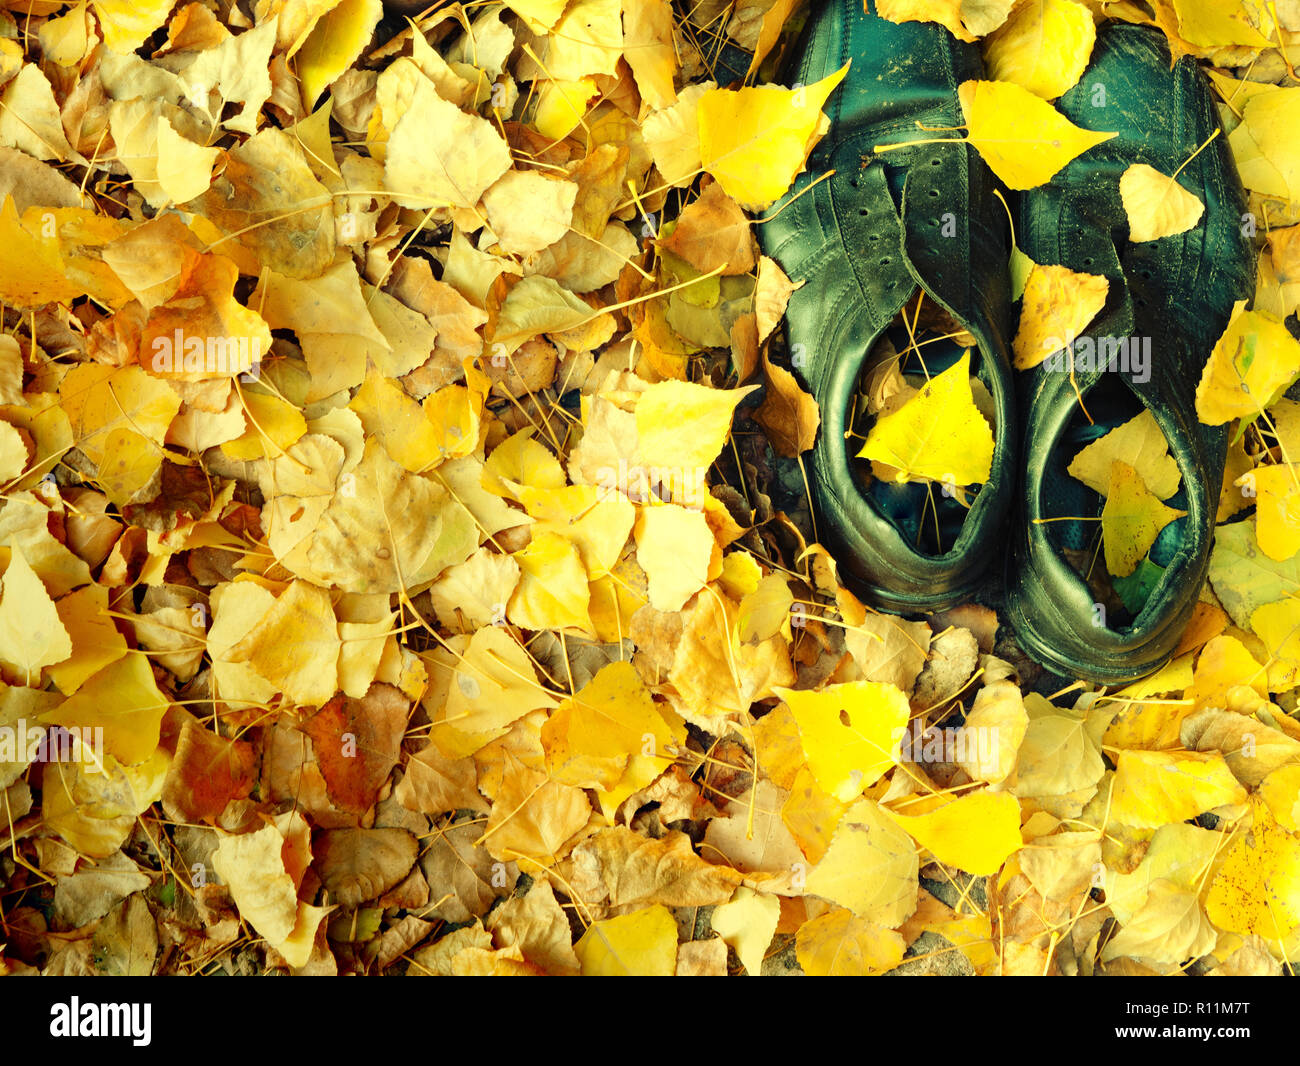 pair of old black shabby worn shoes in fallen yellow leaves foliage on a ground. autumn vibes oldness concept Stock Photo